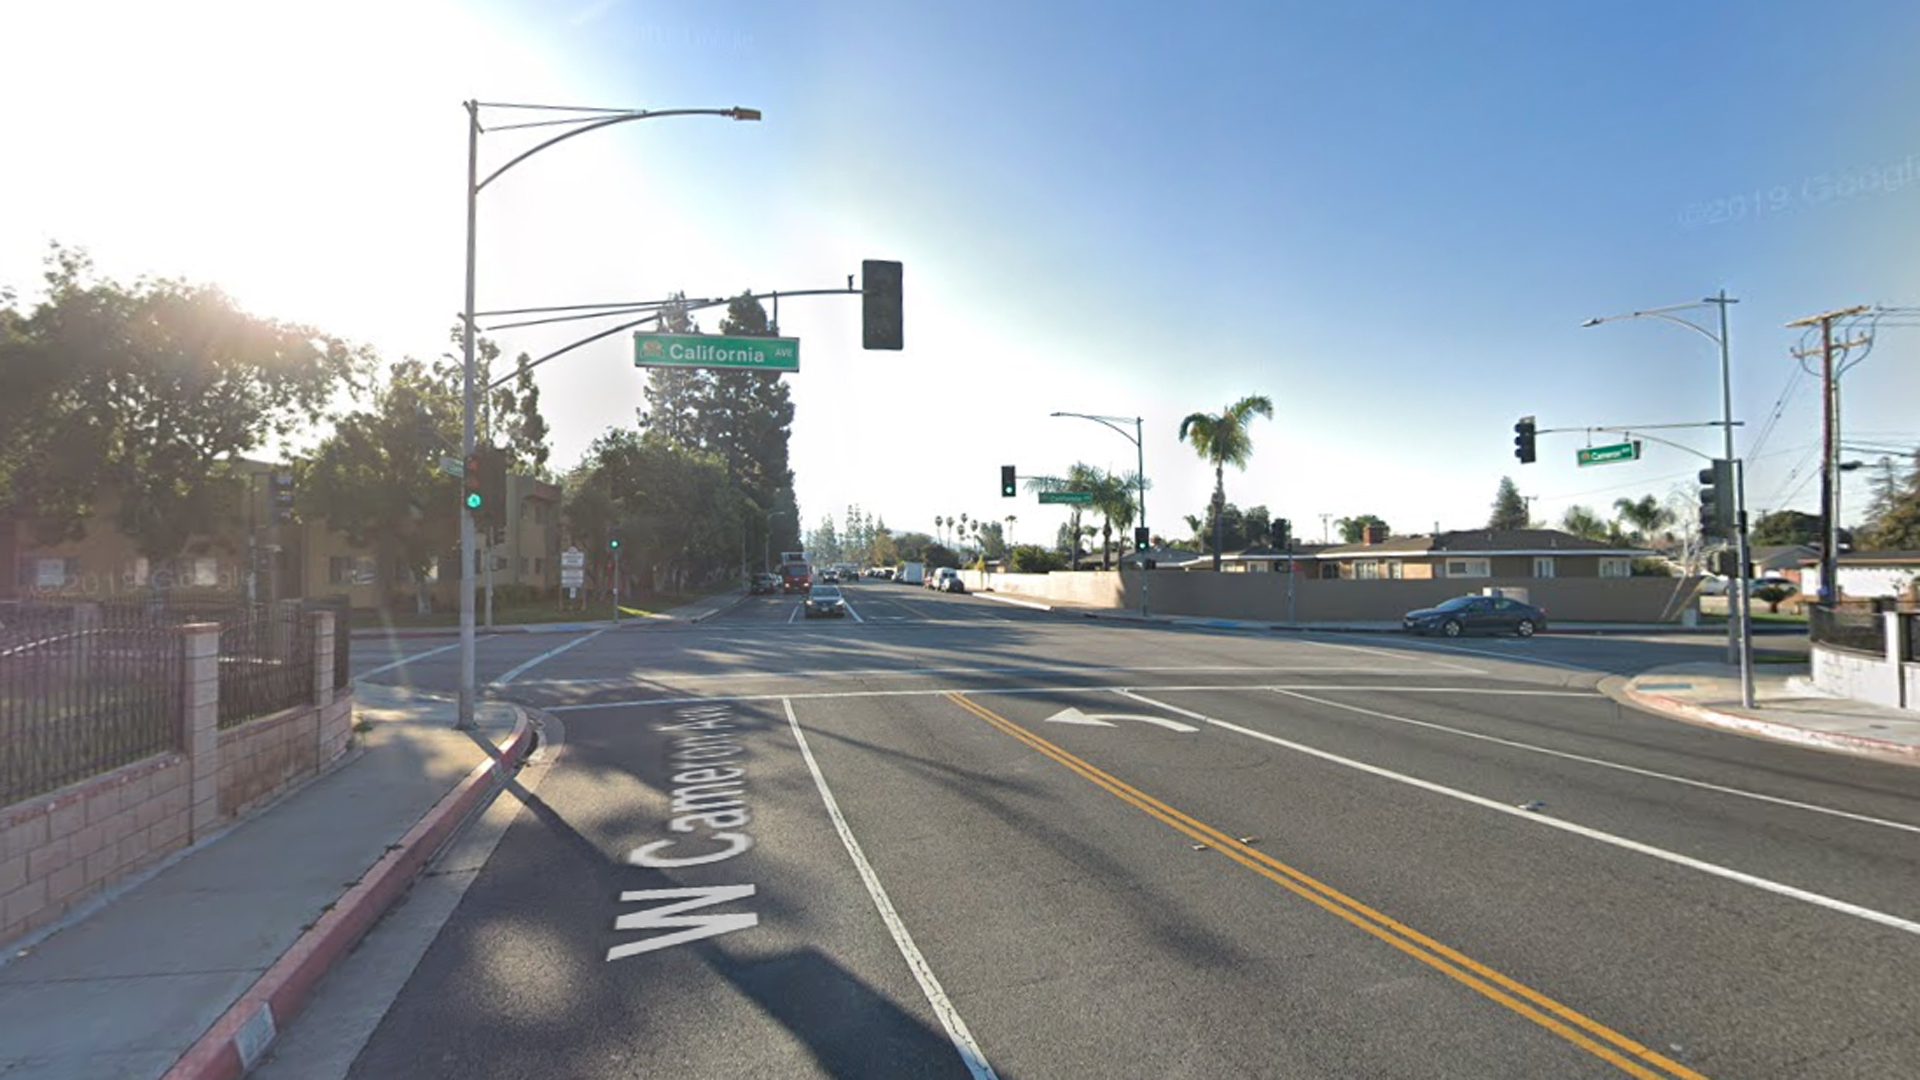 The intersection of Cameron and California avenues in West Covina, as viewed inn a Google Street View image in March of 2019.